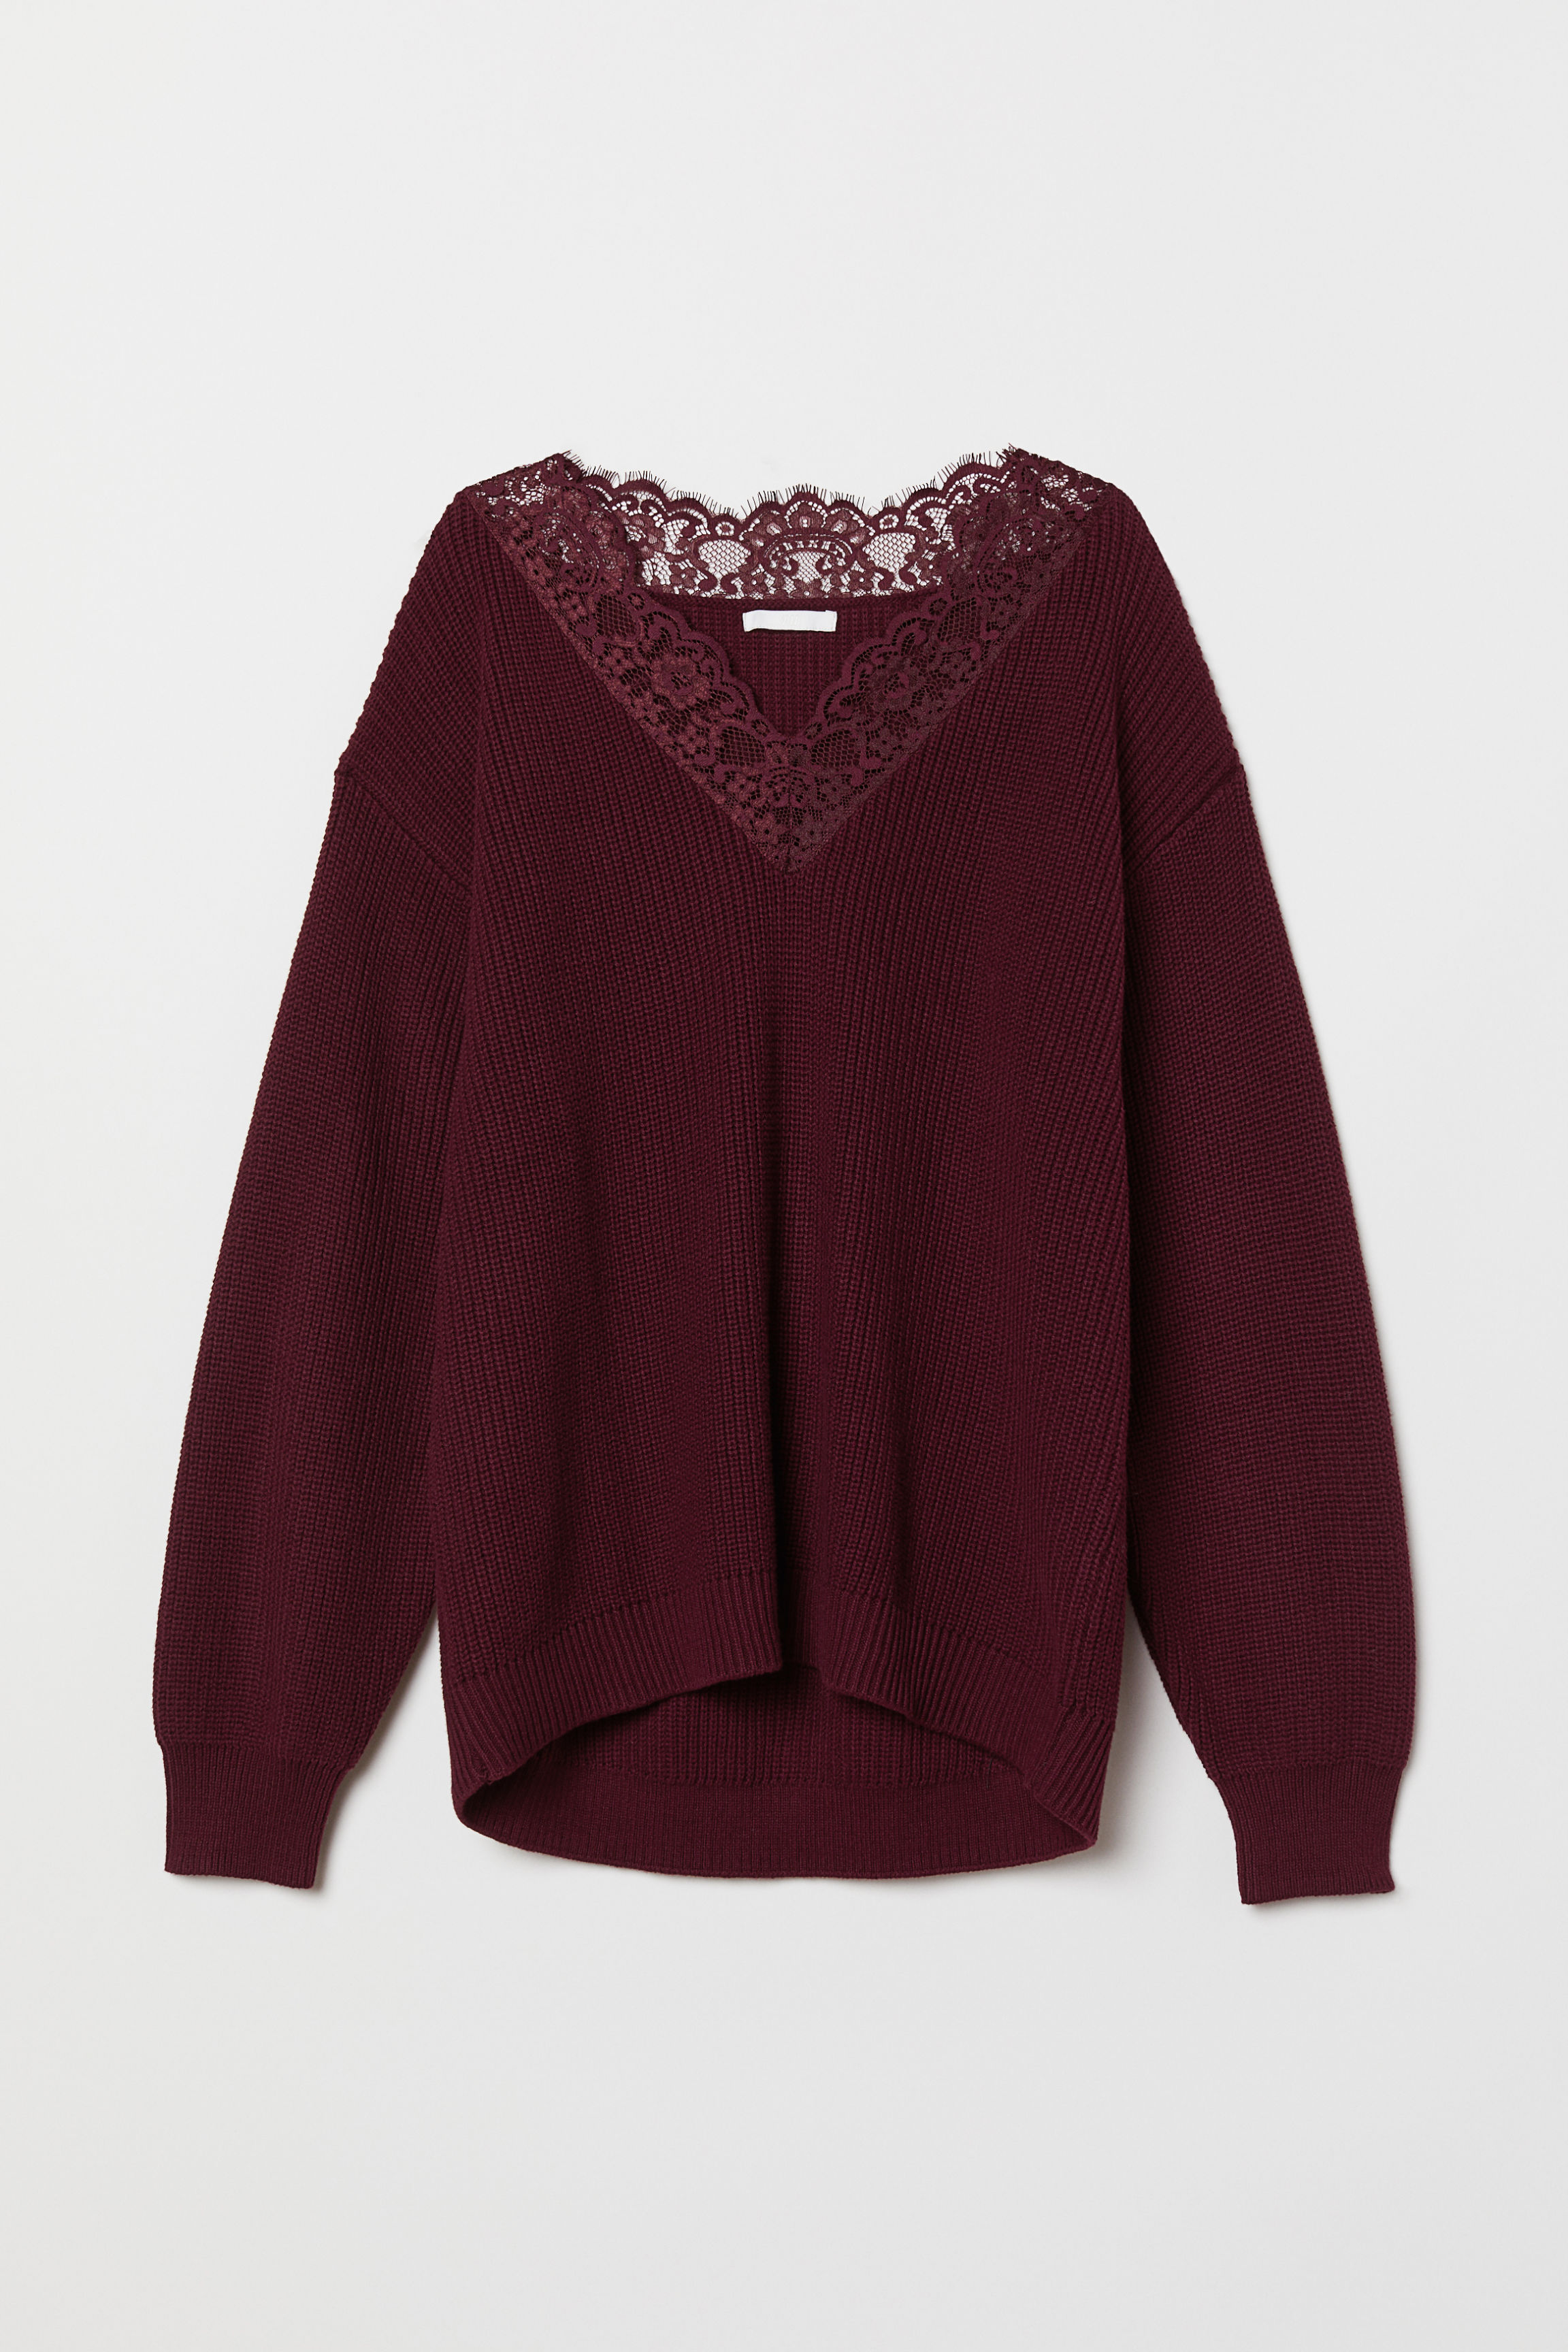 89e34a382b46 Knit Sweater with Lace - Black - Ladies